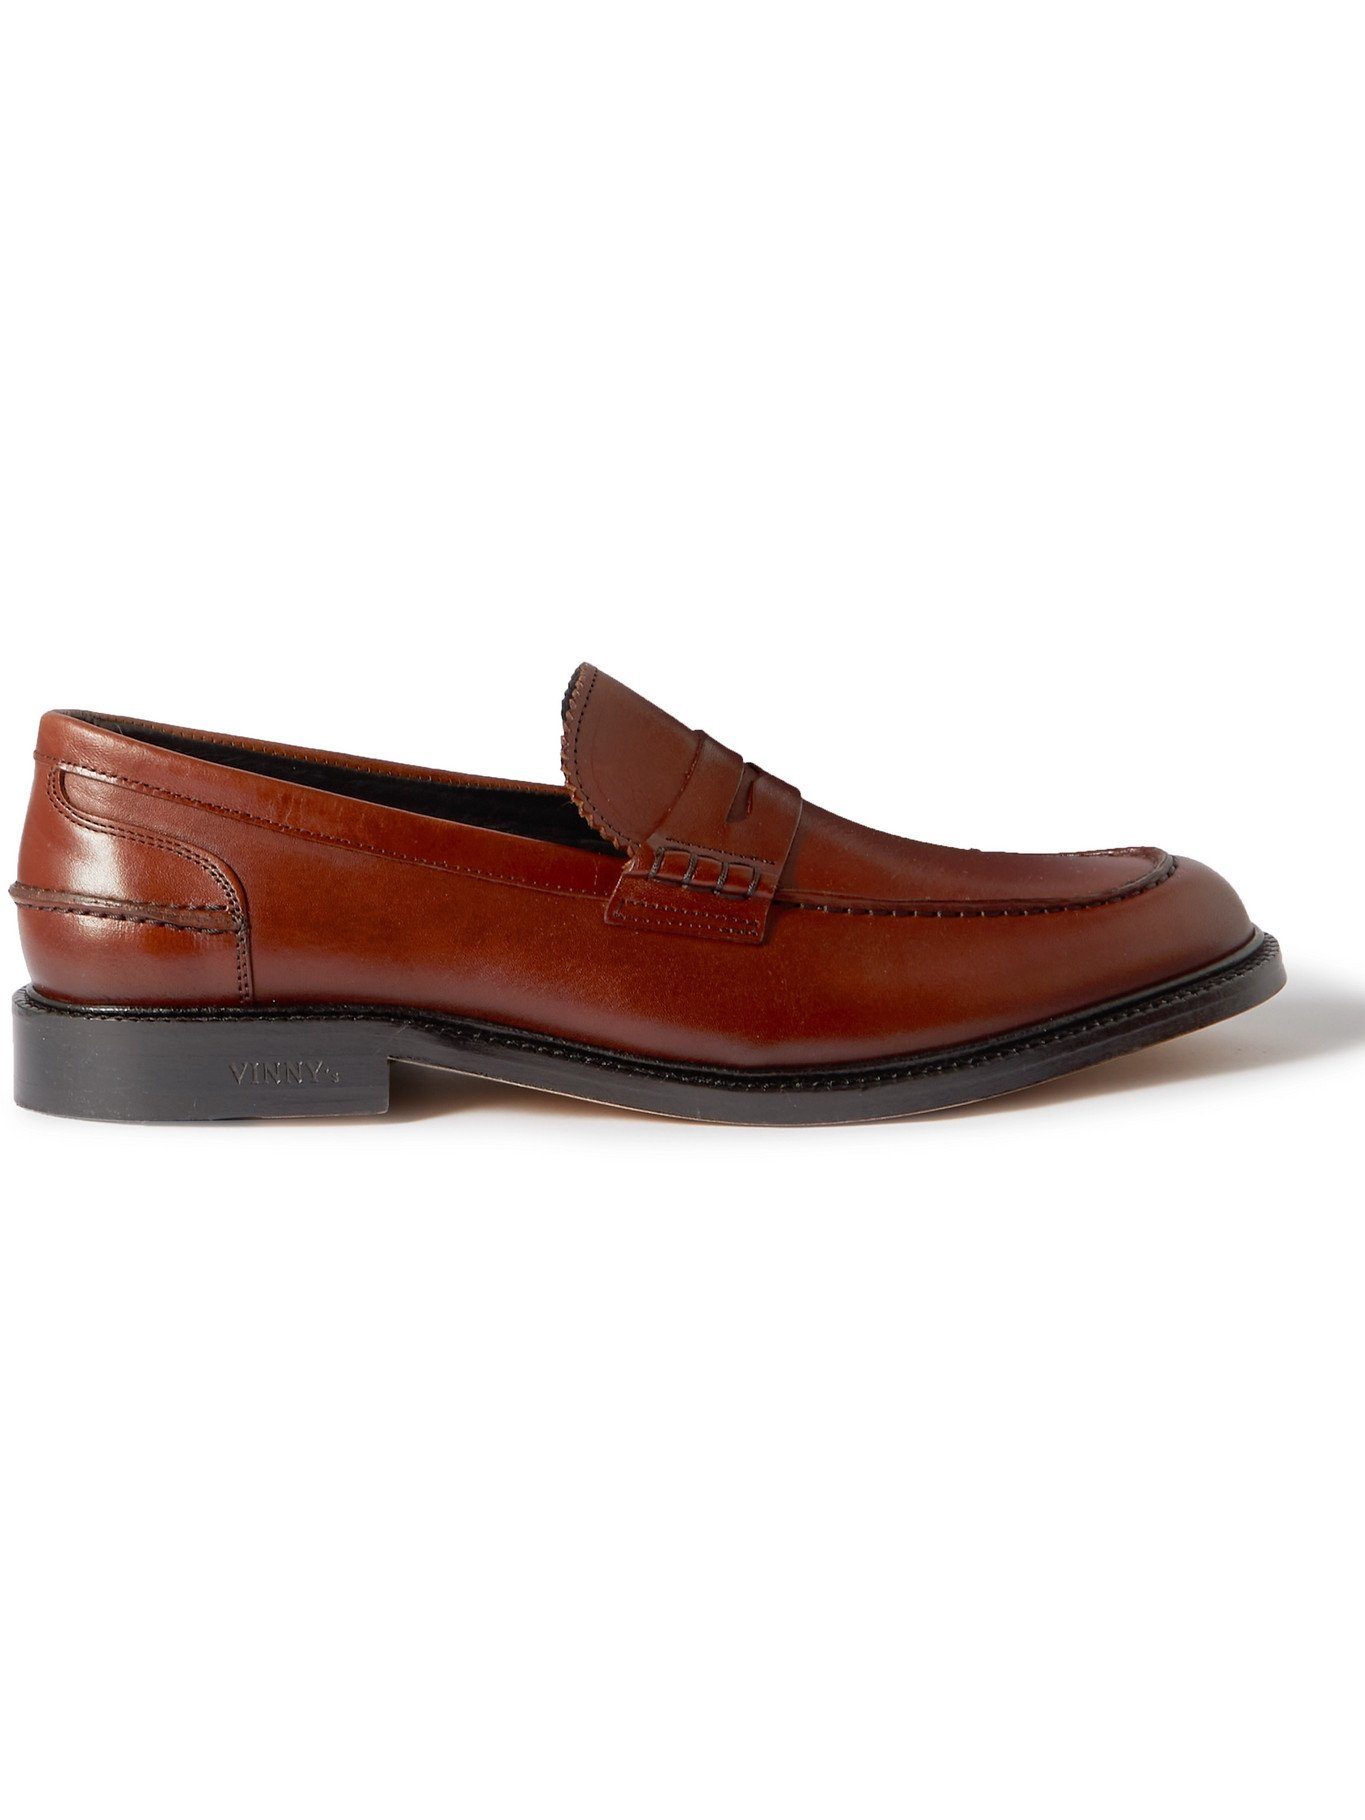 Photo: VINNY'S - Townee Leather Penny Loafers - Brown - 40